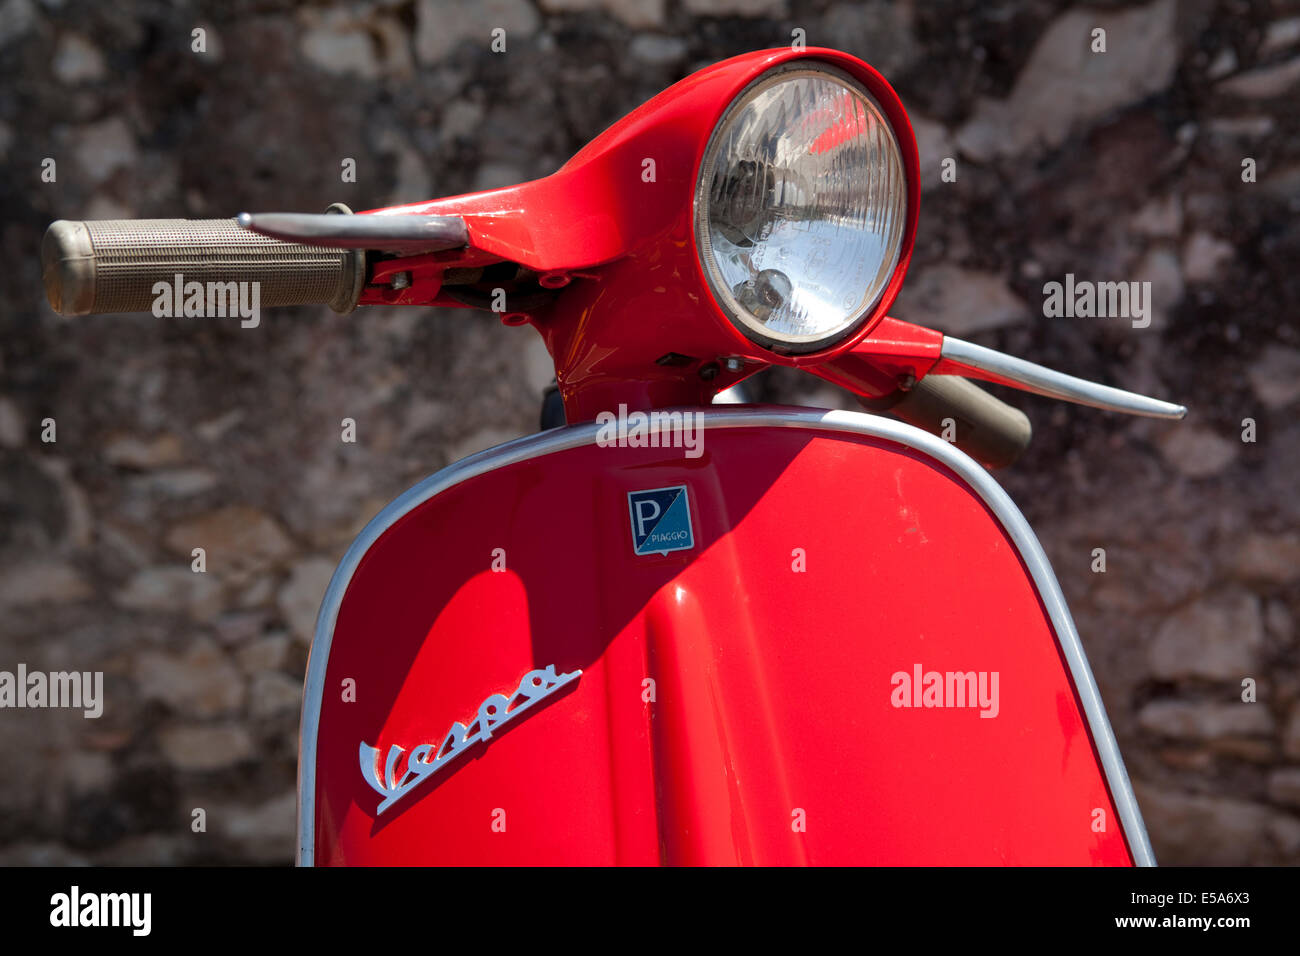 red vespa stock photos red vespa stock images alamy